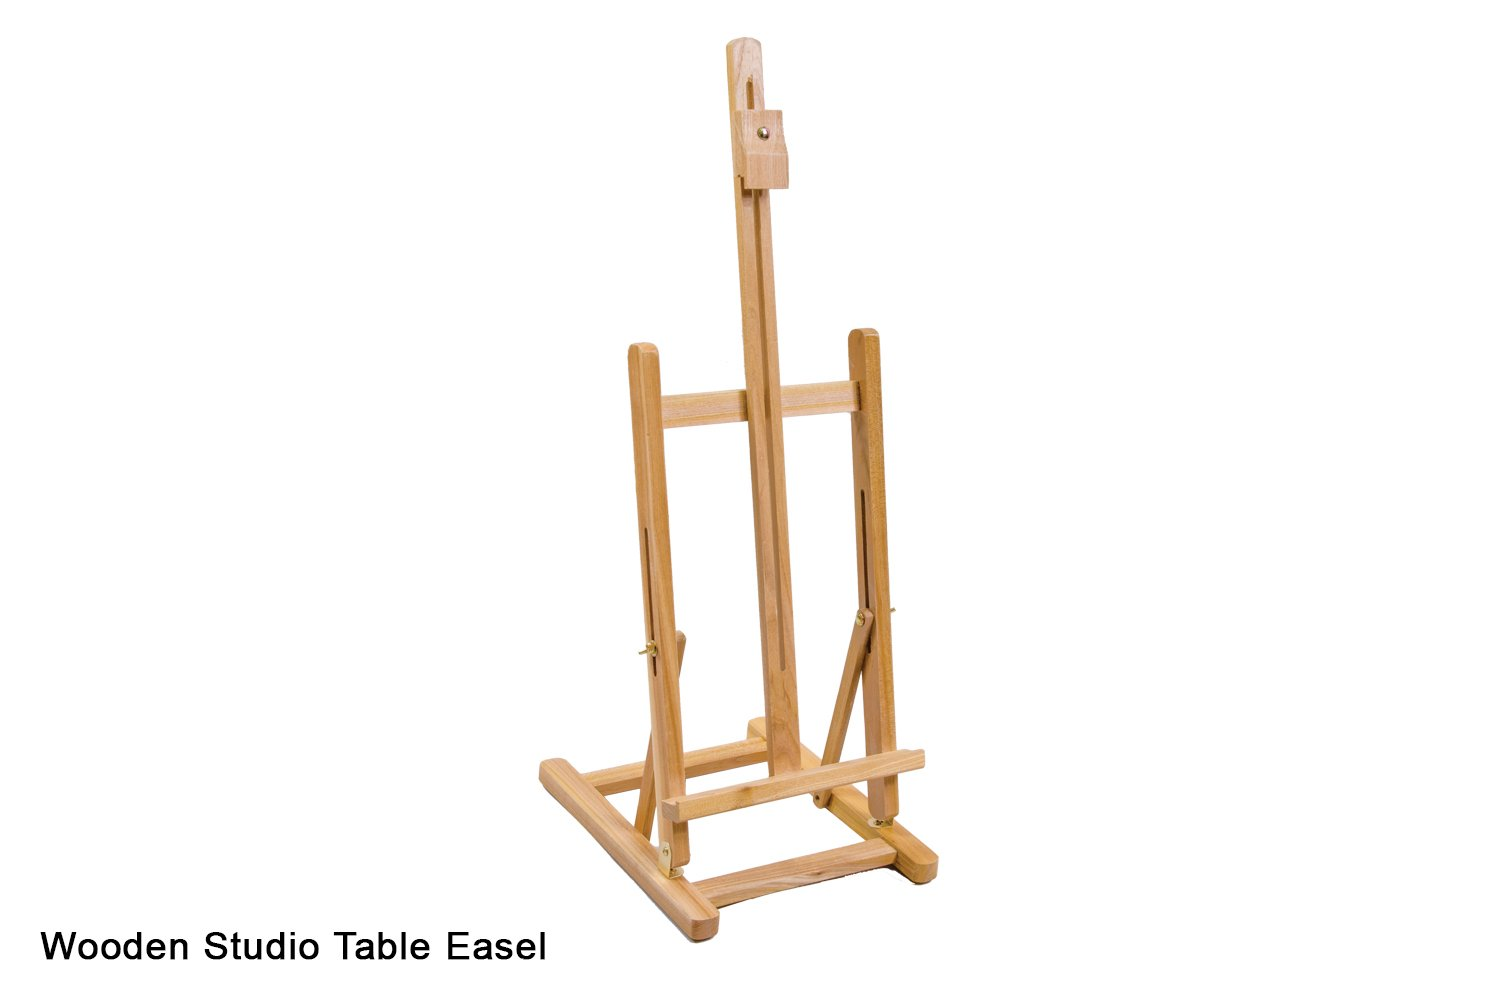 Wooden Studio Table Easel